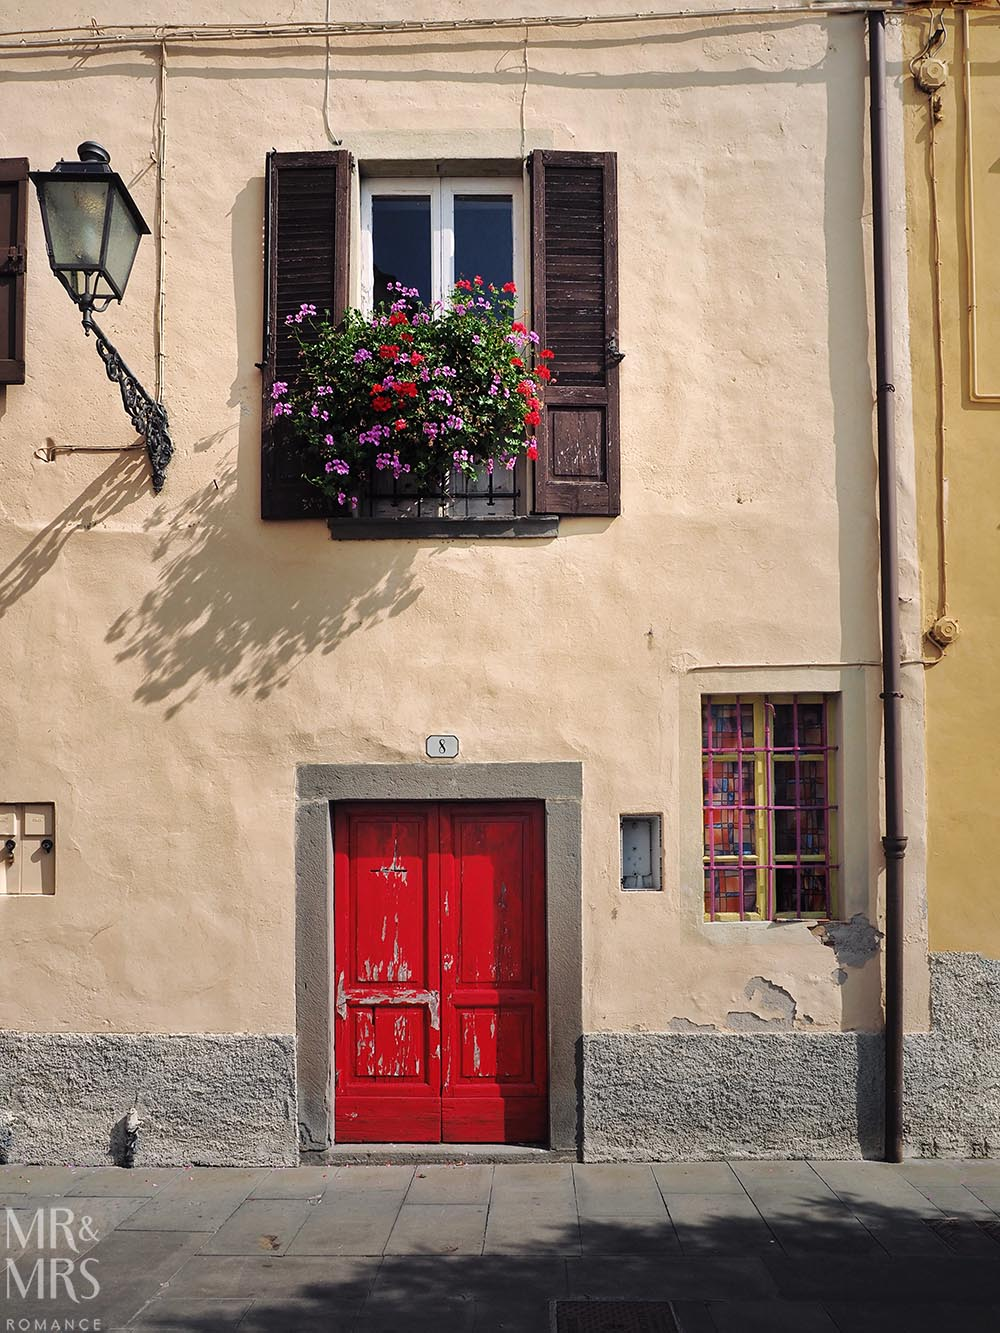 Monte Isola, Lake Iseo, Italy - red door